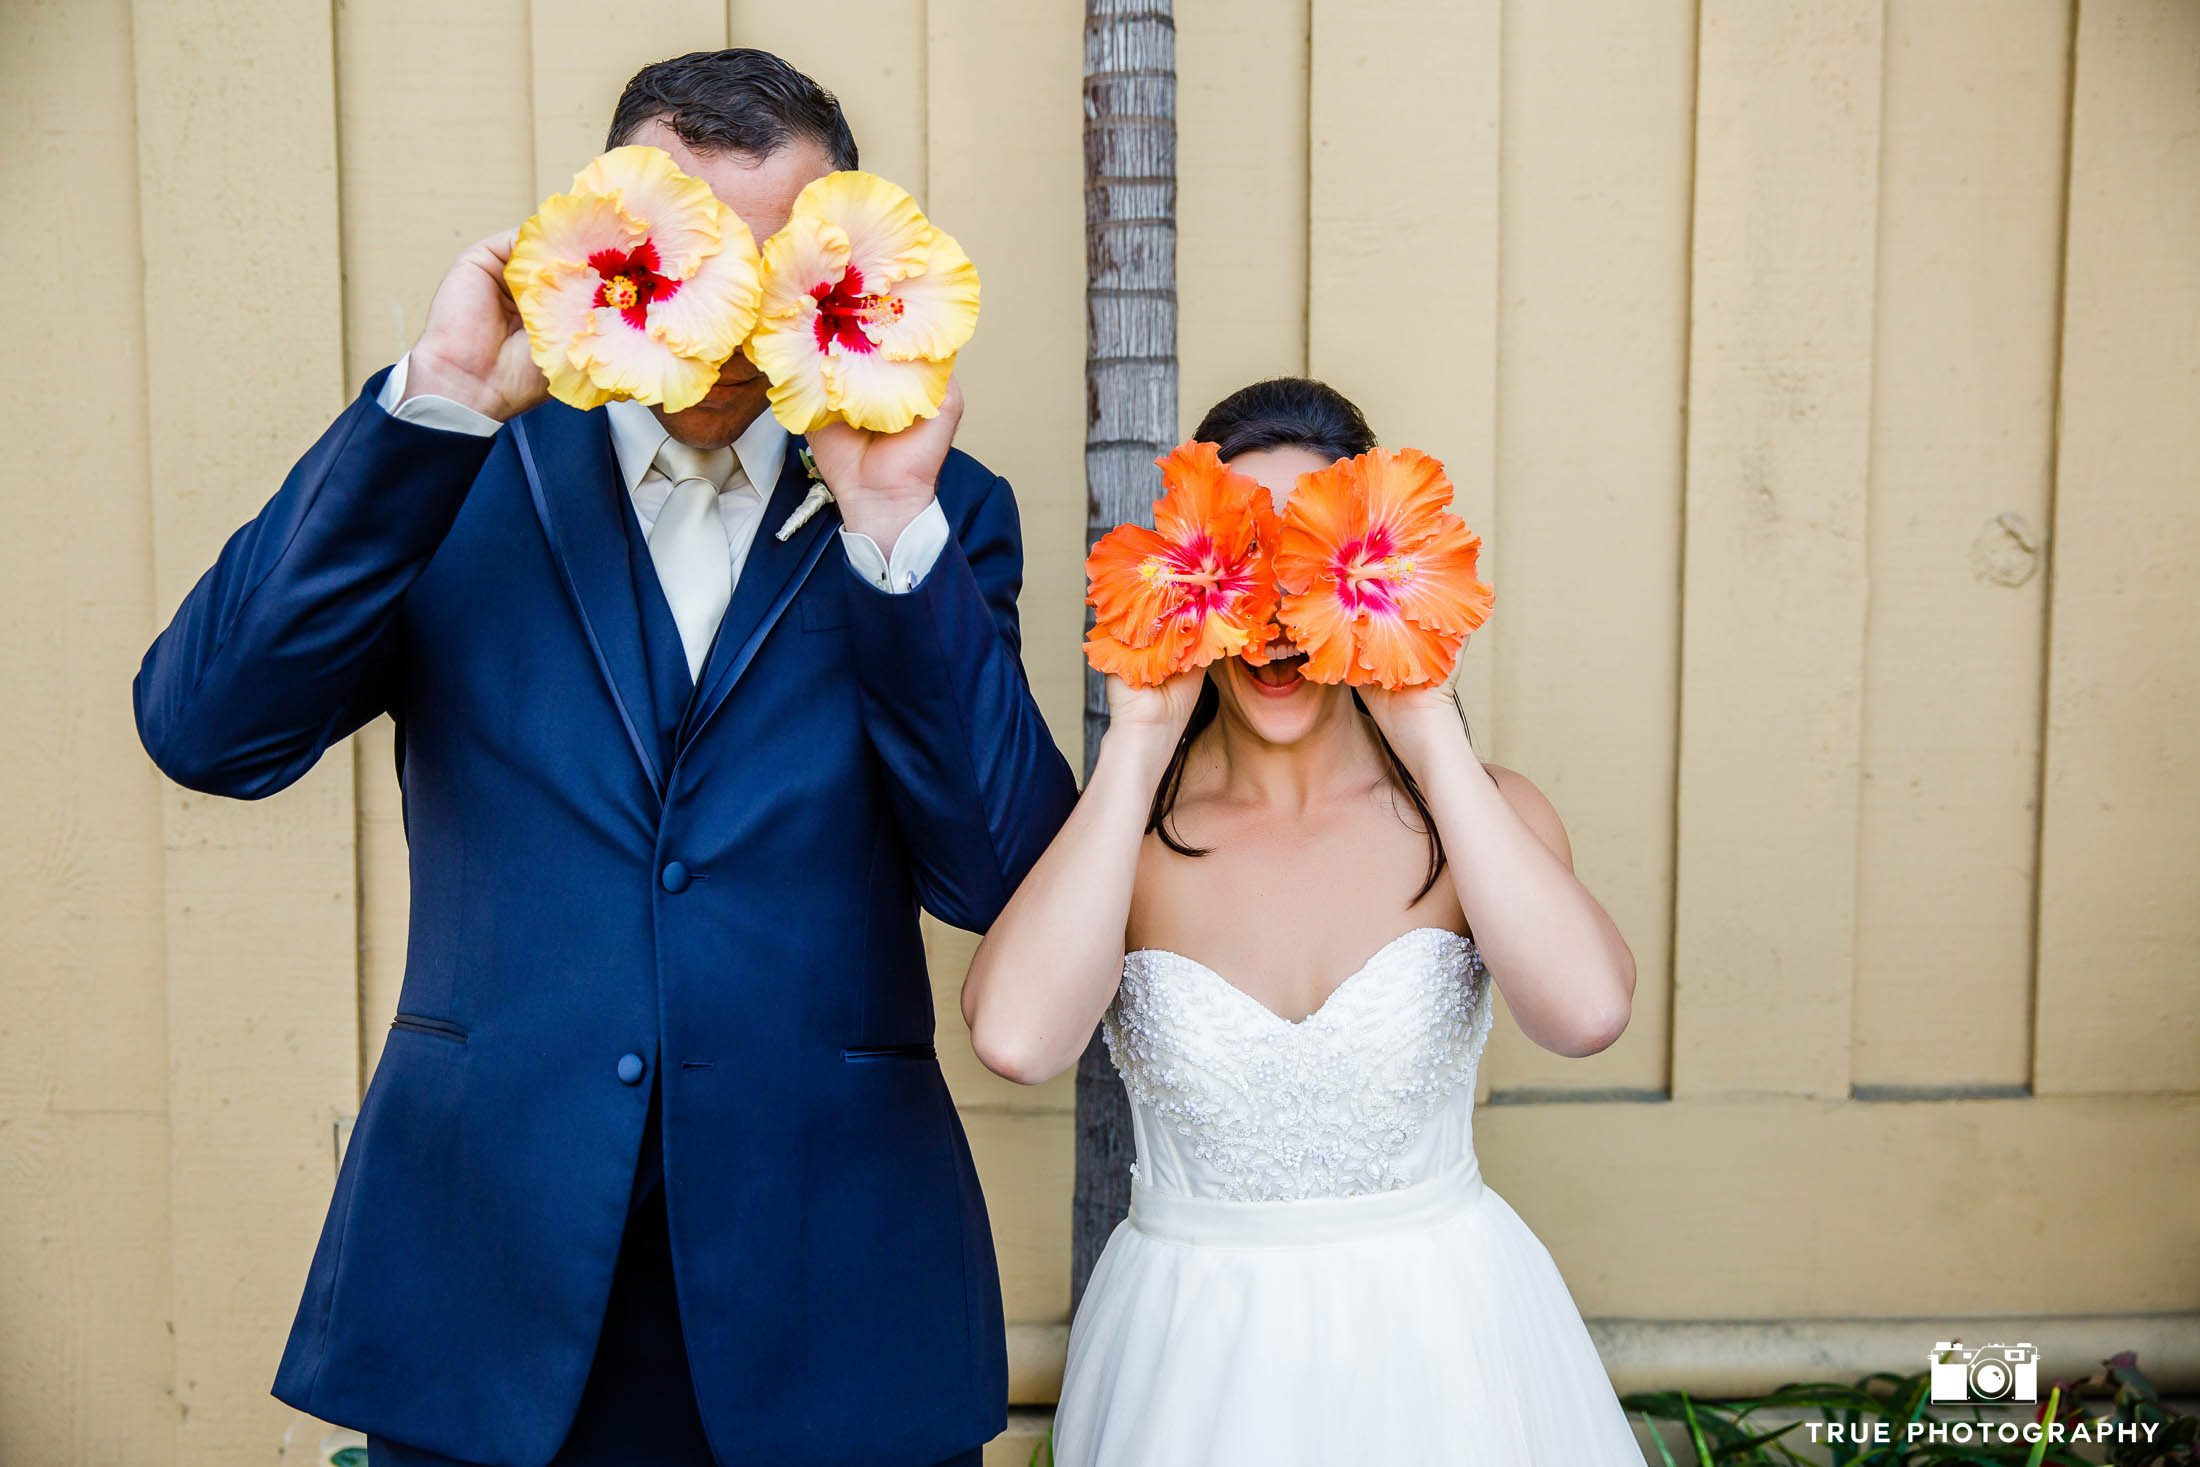 Funny Bride and Groom hold tropical flowers in front of faces